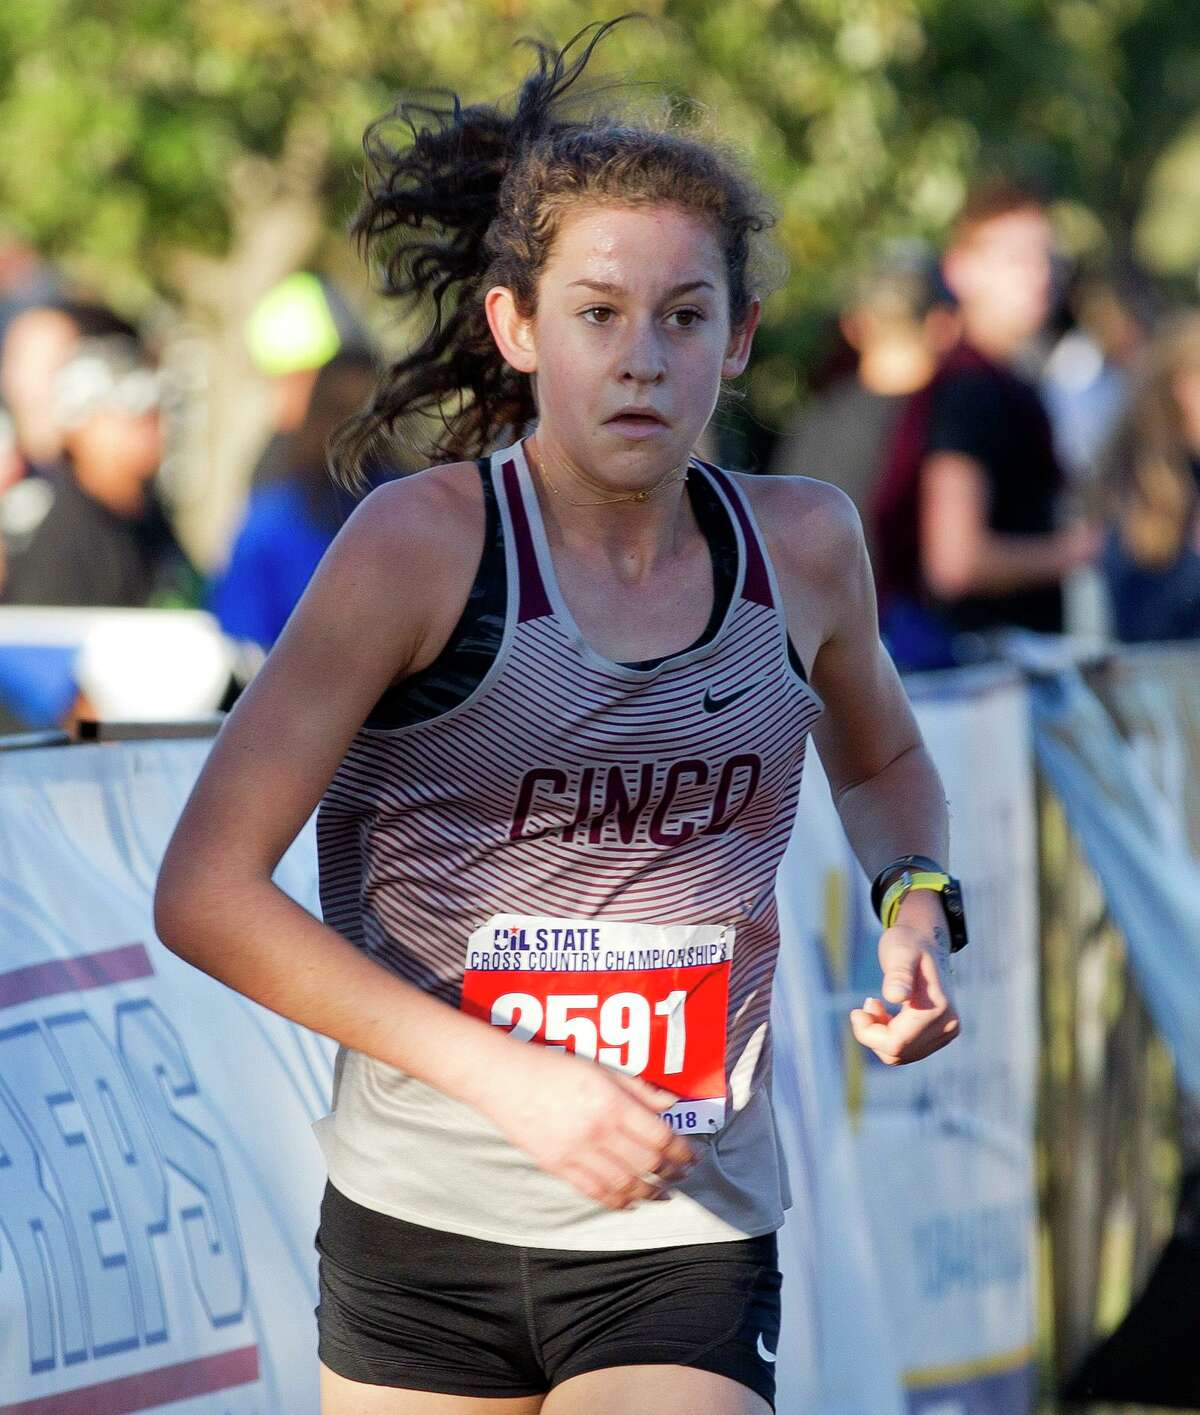 Sophie Atkinson of Cinco Ranch competes in the Class 6A girls race during the UIL State Cross Country Championships, Saturday, Nov. 3, 2018, in Round Rock. Atkinson finished ninth overall in the race.